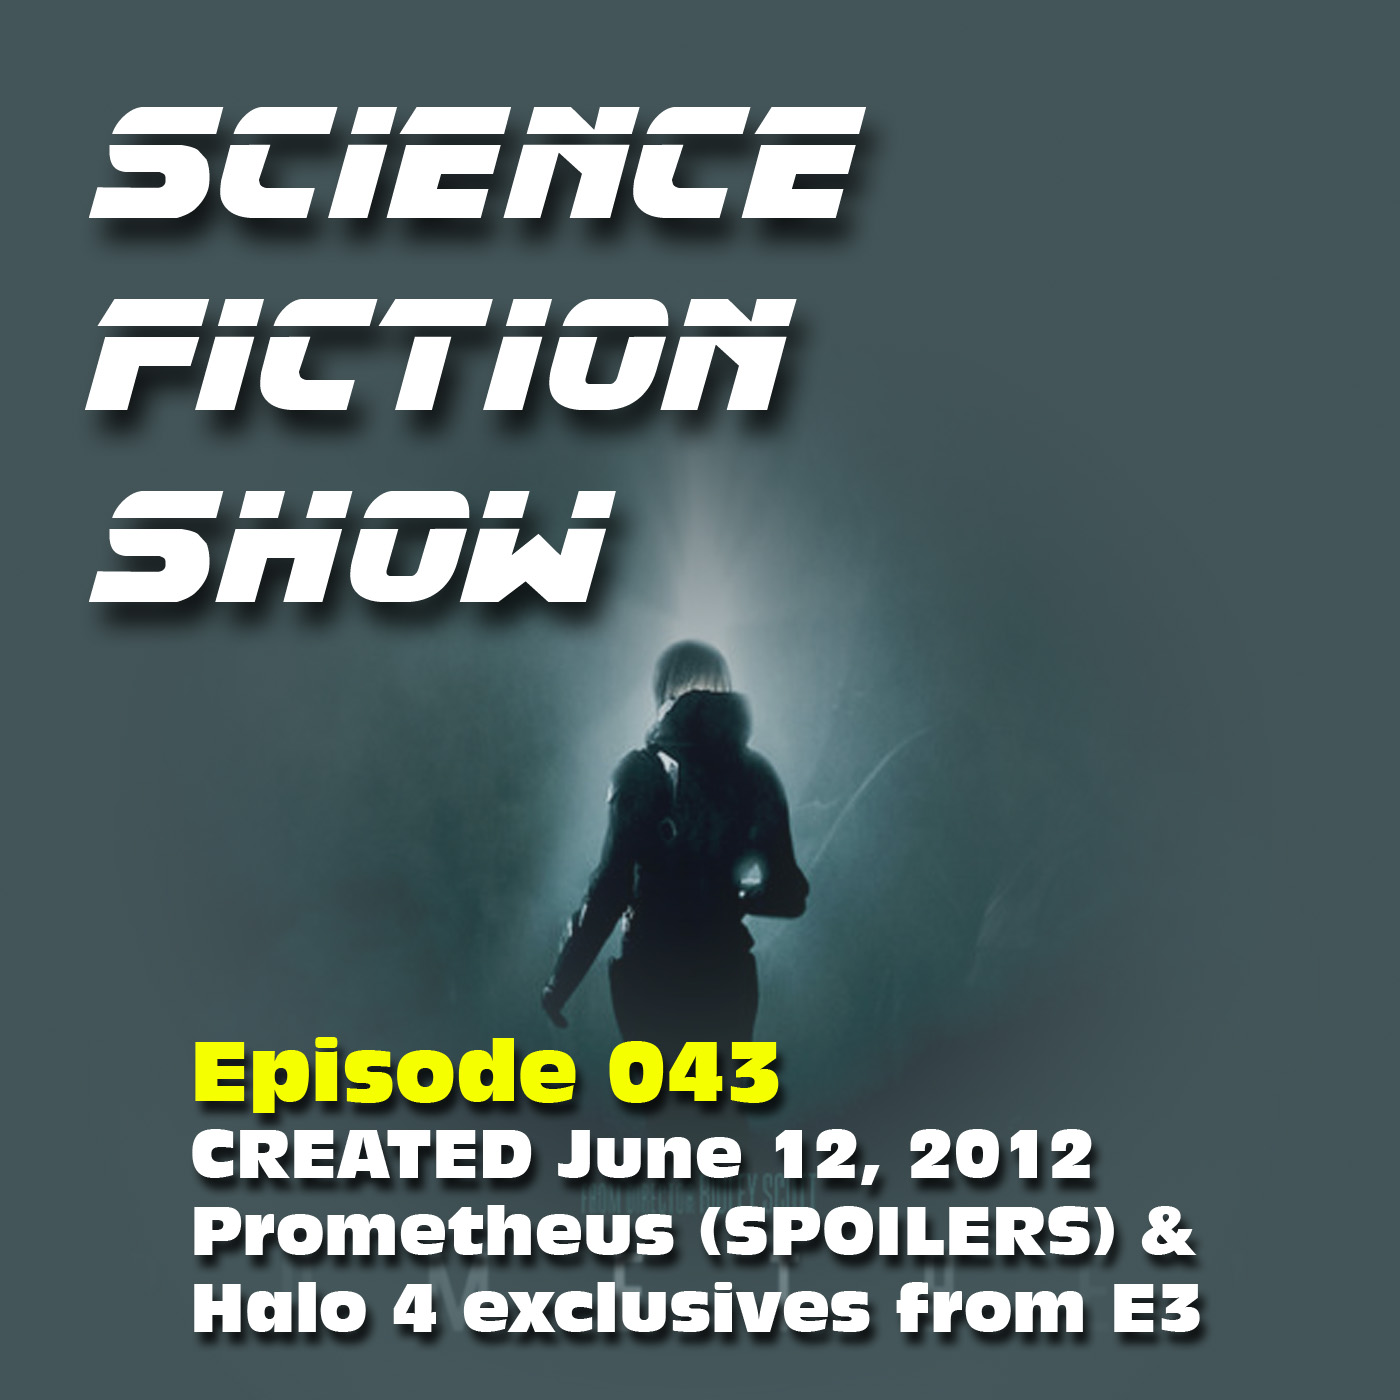 Episode 043: Prometheus (SPOILERS)/Halo 4 Exclusives from E3